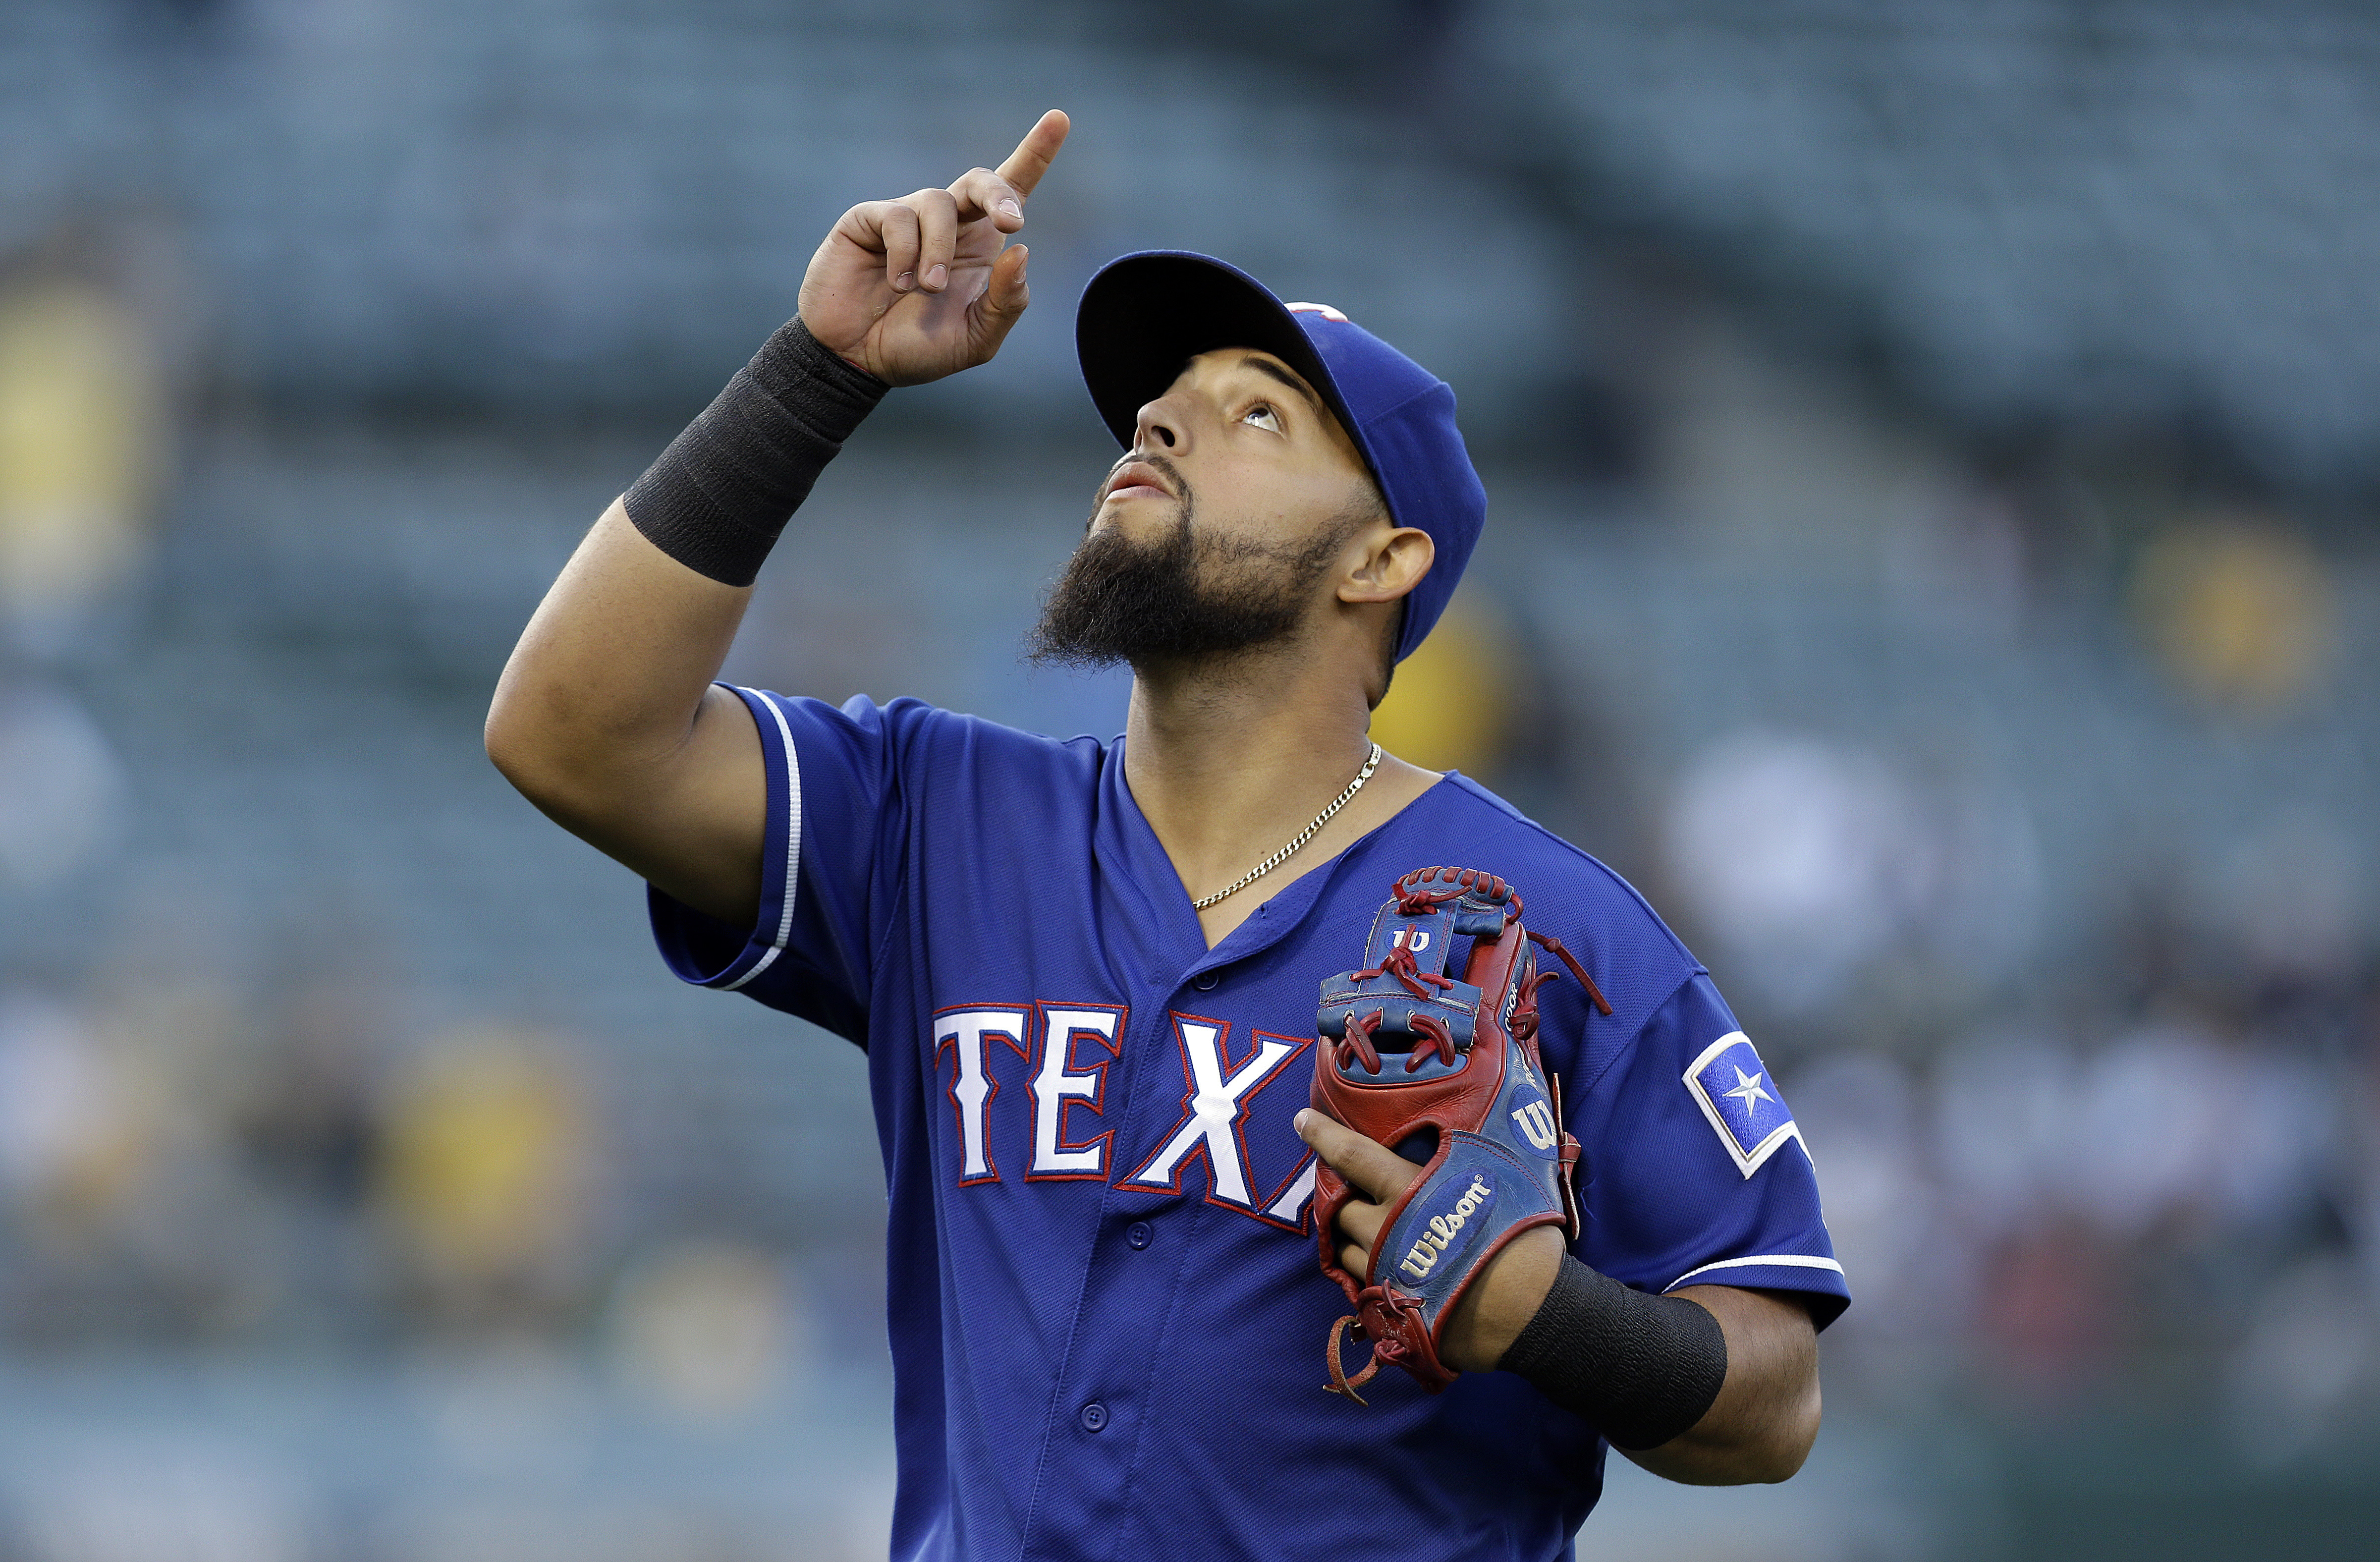 Texas Rangers' Rougned Odor gestures prior to a baseball game against the Oakland Athletics, Monday, May 16, 2016, in Oakland, Calif. (AP Photo/Ben Margot)